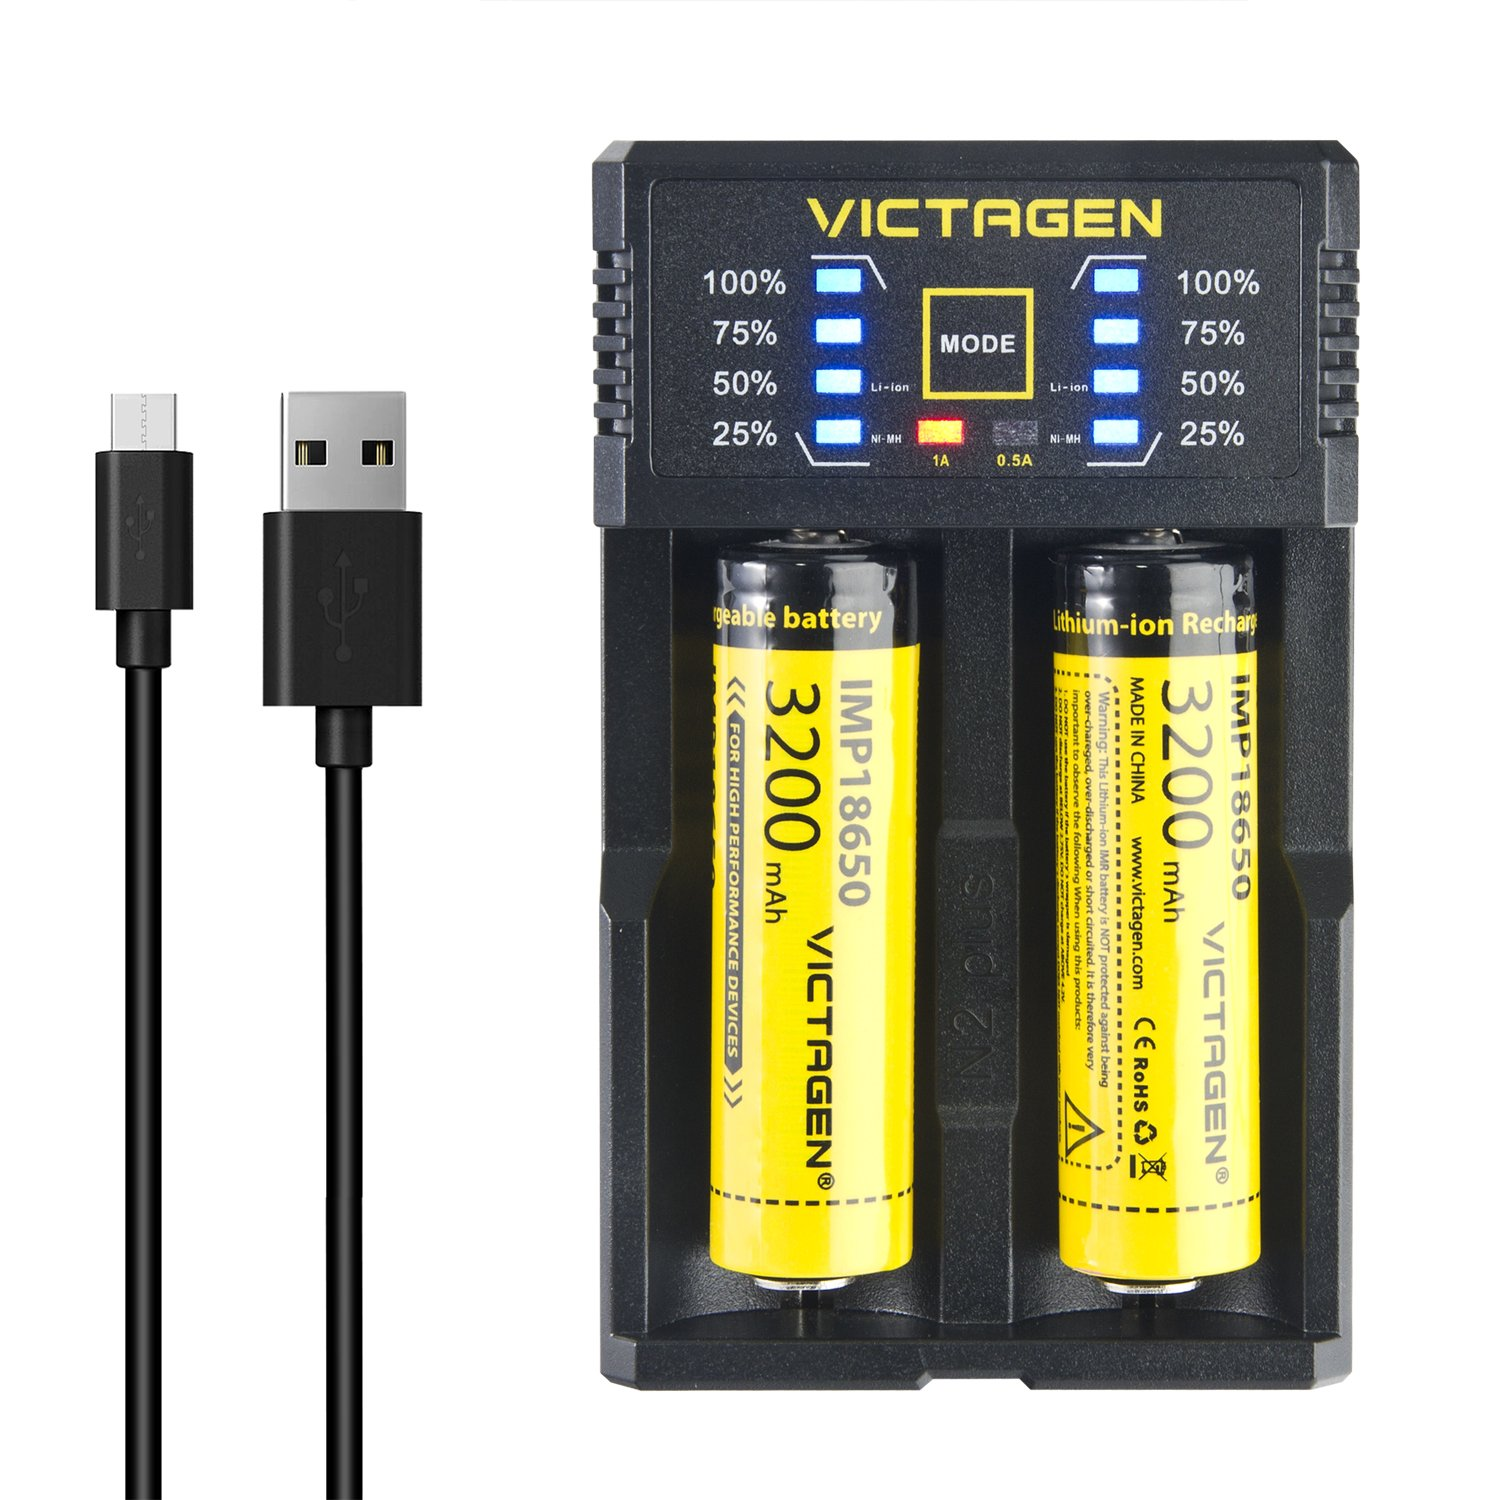 Victagen 18650 Lithium Battery (2 Packs) and Battery Charger, Universal Smart Charger For Rechargeable Batteries Li-ion 26650 18650/IMR/LiFePO4/Ni-MH/Ni-Cd 22650 18490 18350 17670 17500 16340 AA AAA C by Victagen (Image #1)